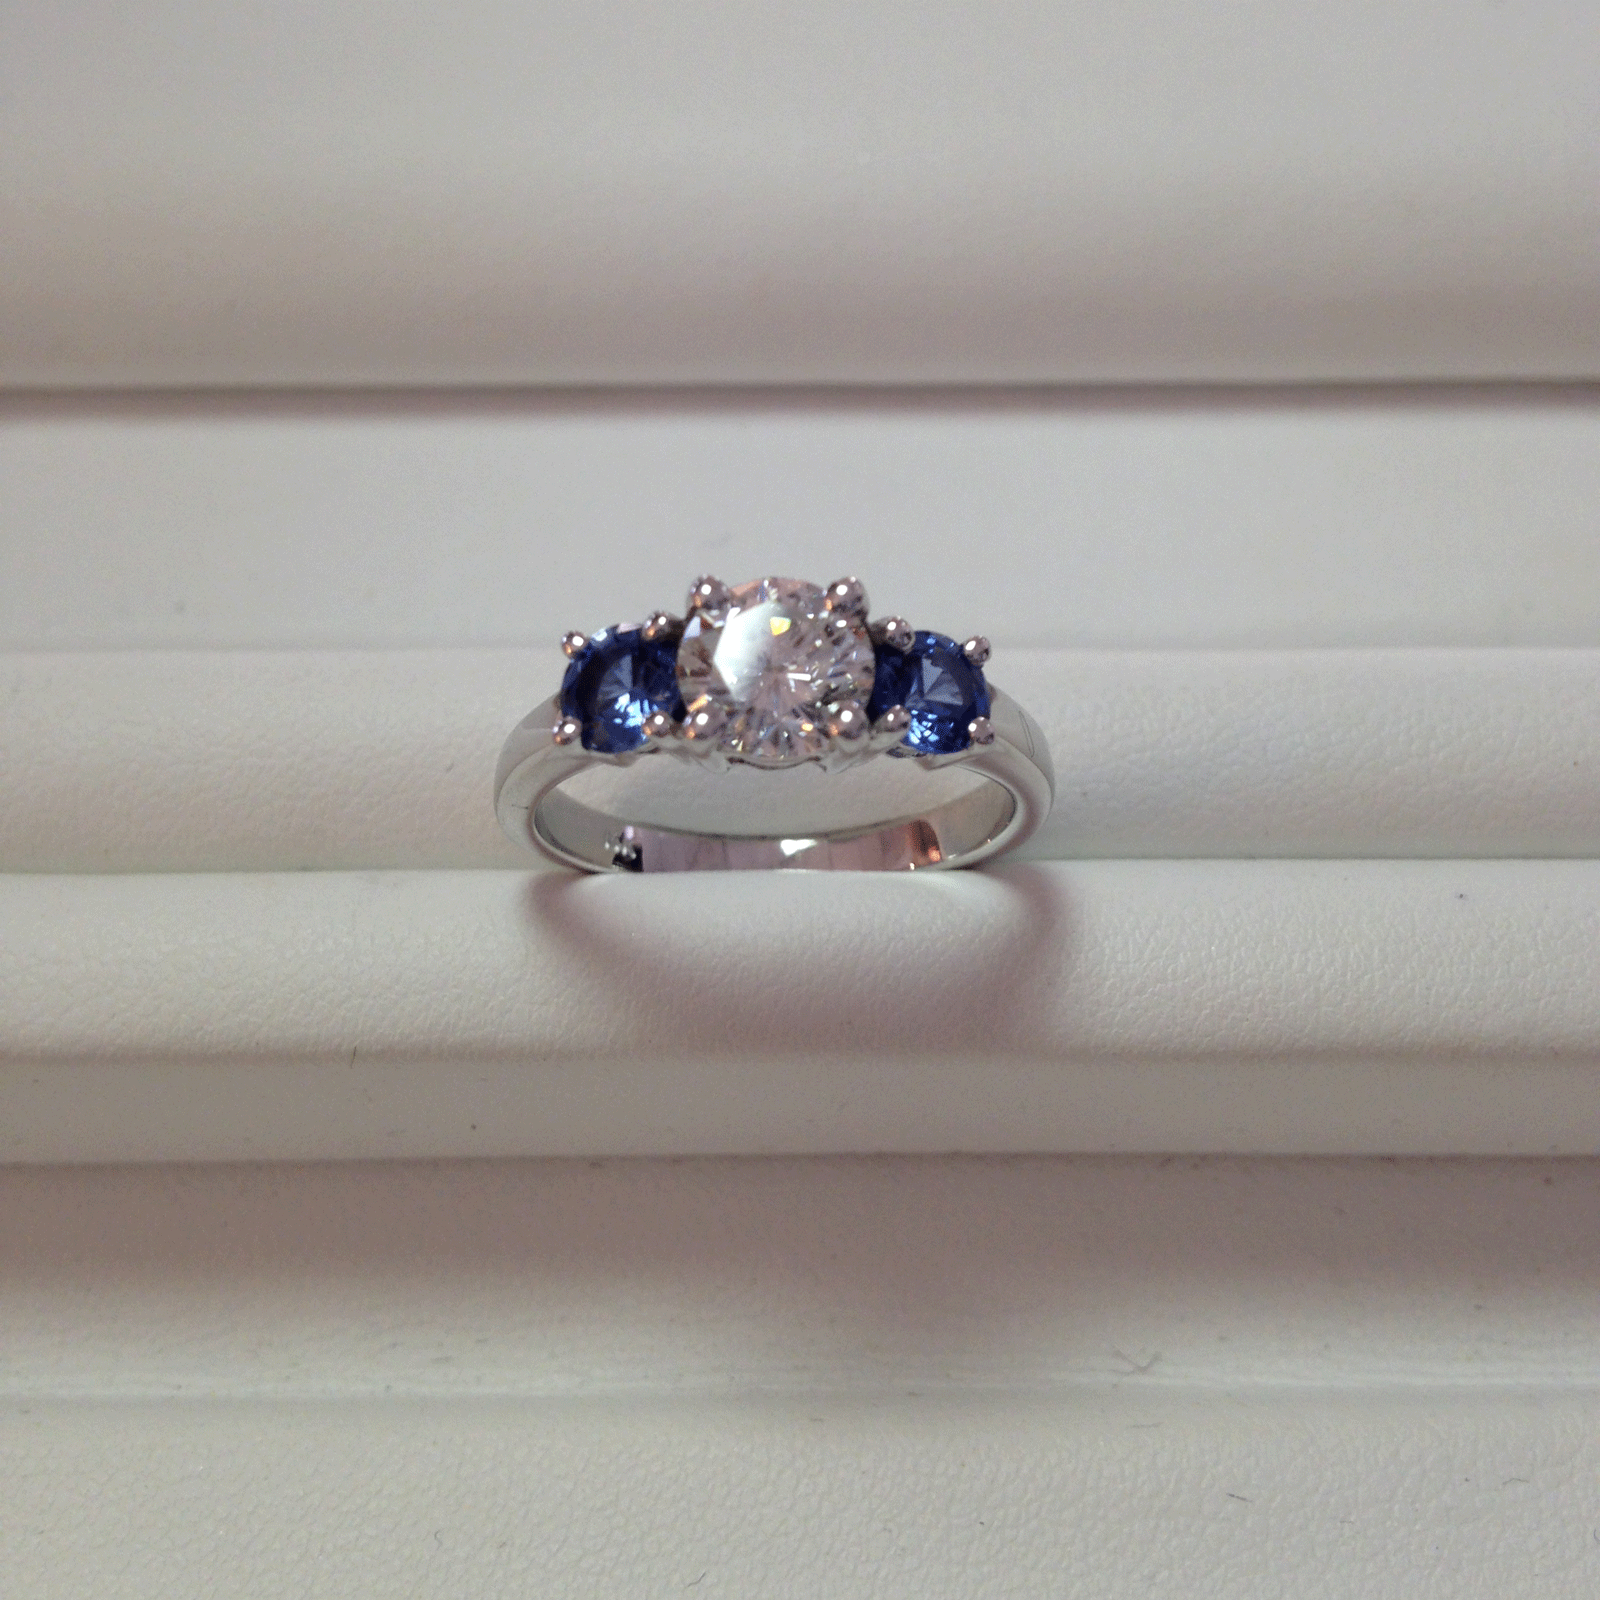 sapphire enr cushion a ultra pav gray white unheated french blue in solitaire engagement pave halo petite ring